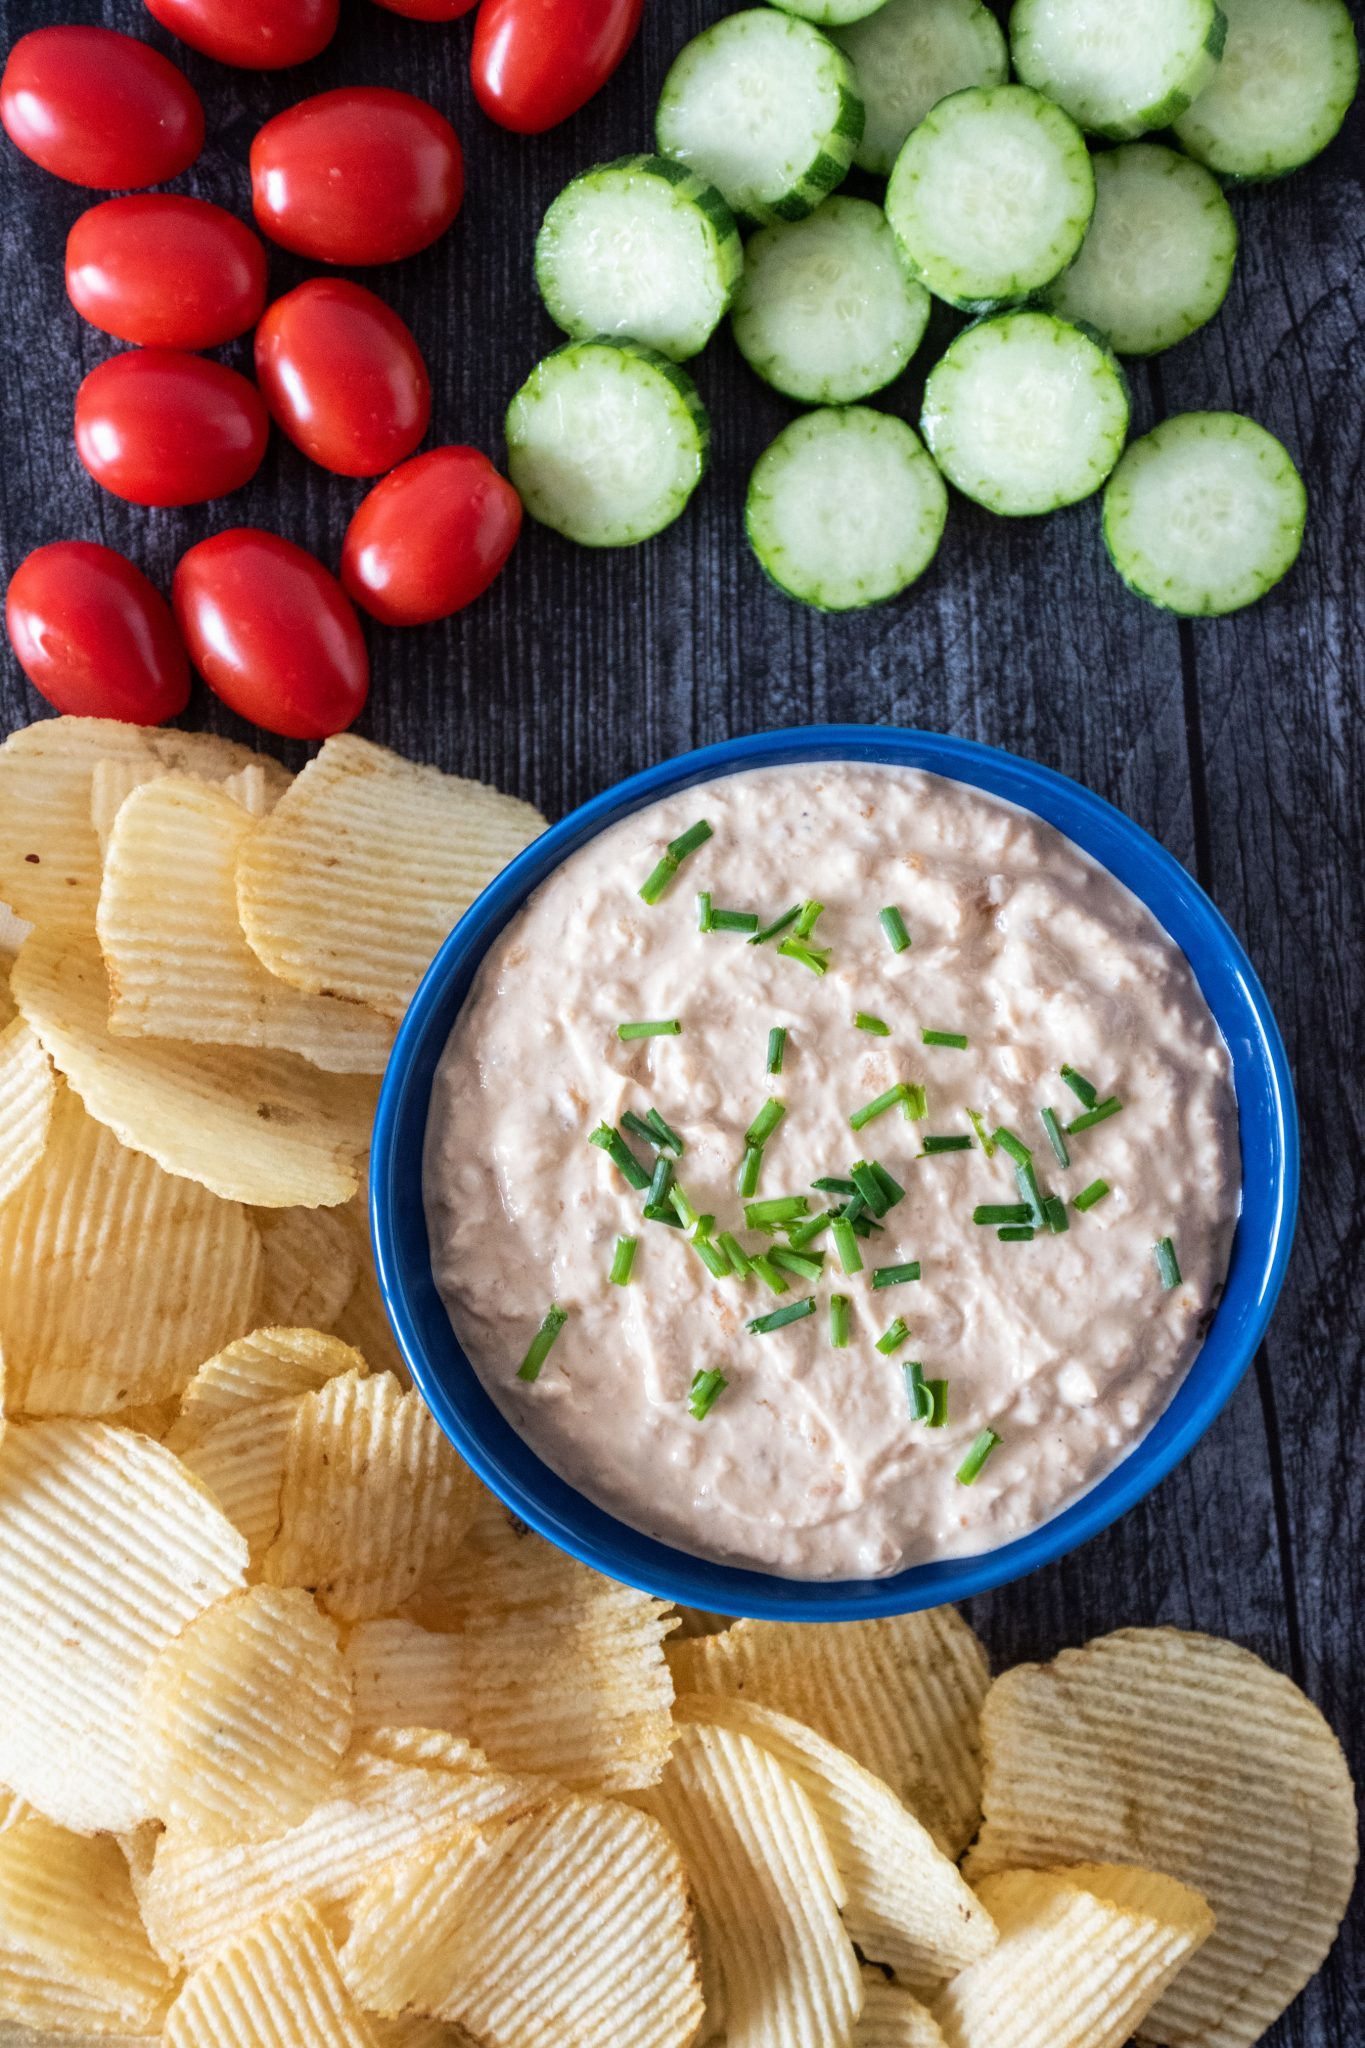 Overhead picture of bowl of dip, surrounded by chips, baby tomatoes, and cucumber slices.